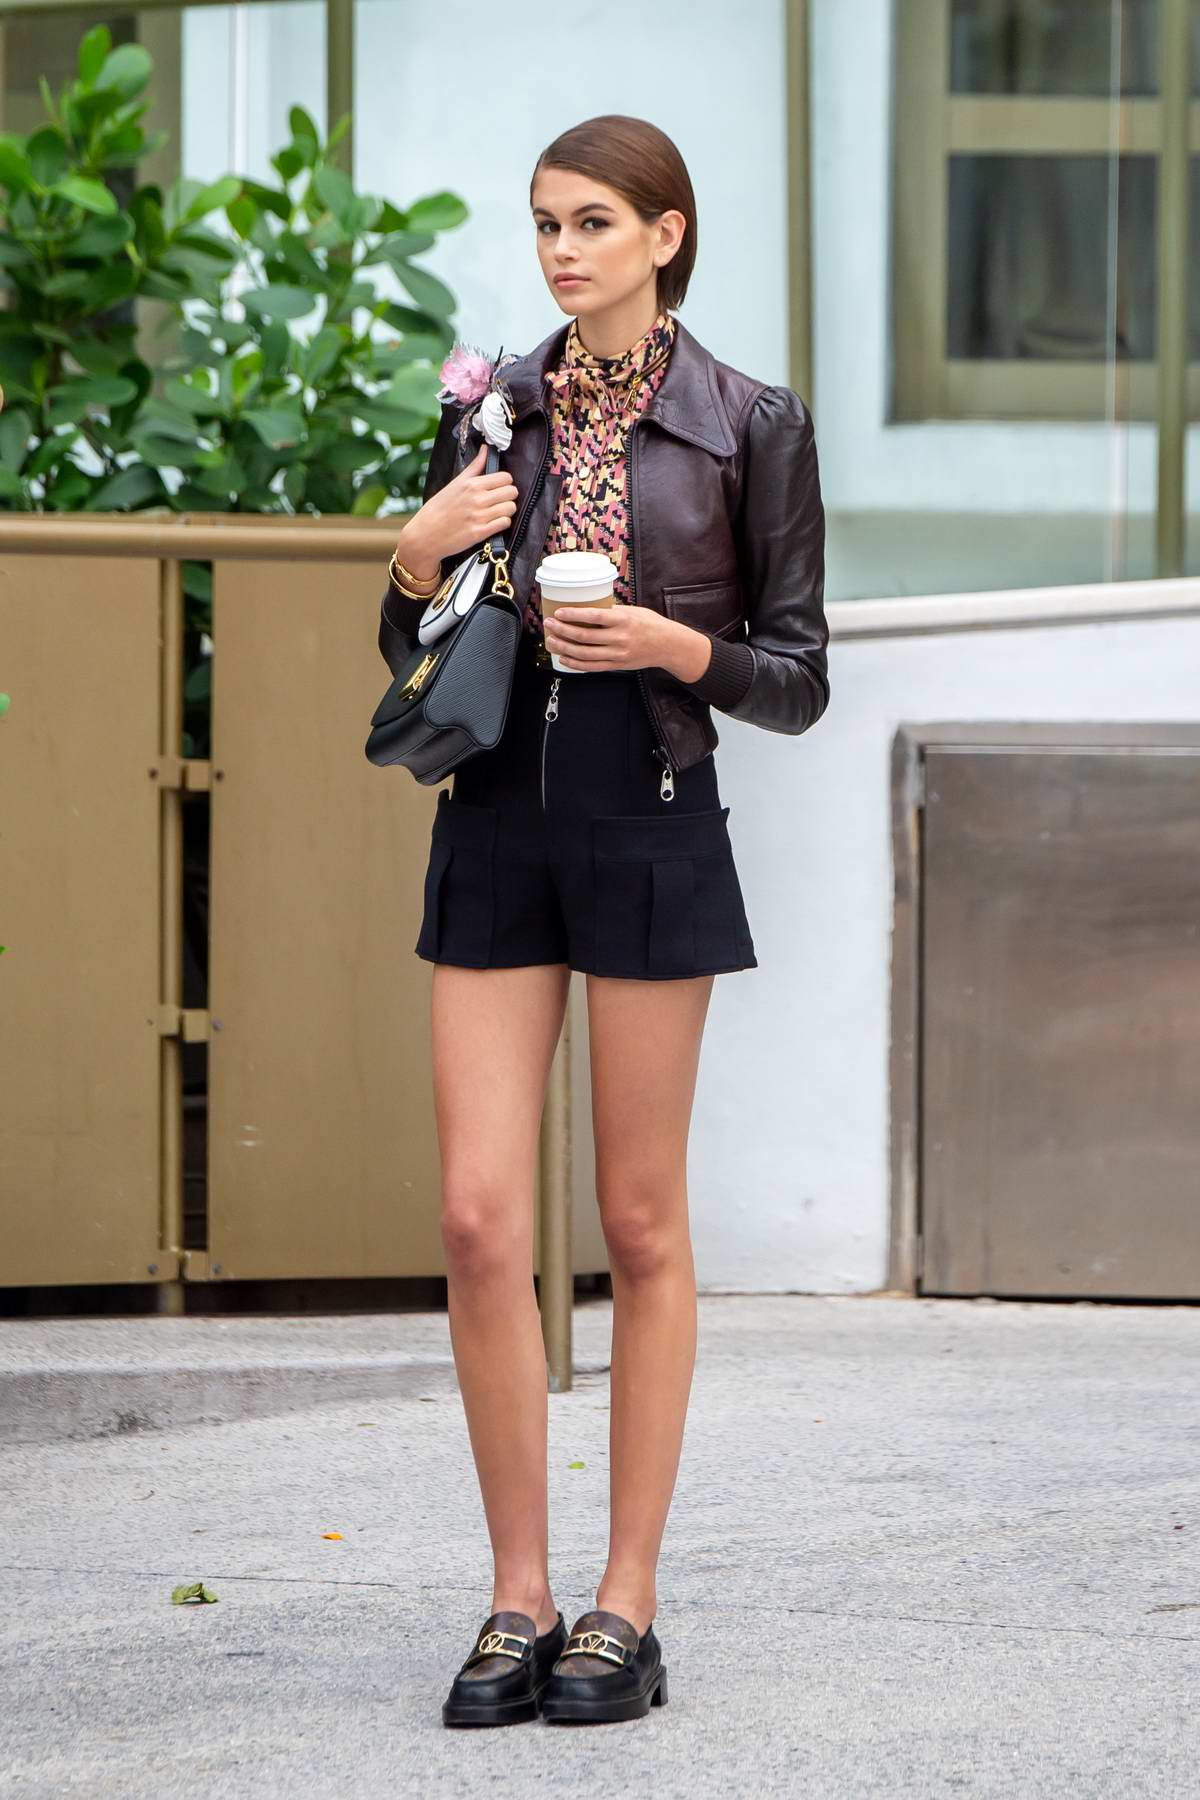 Kaia Gerber looks fashionable in multiple outfits during a Louis Vuitton photoshoot in Miami Beach, California